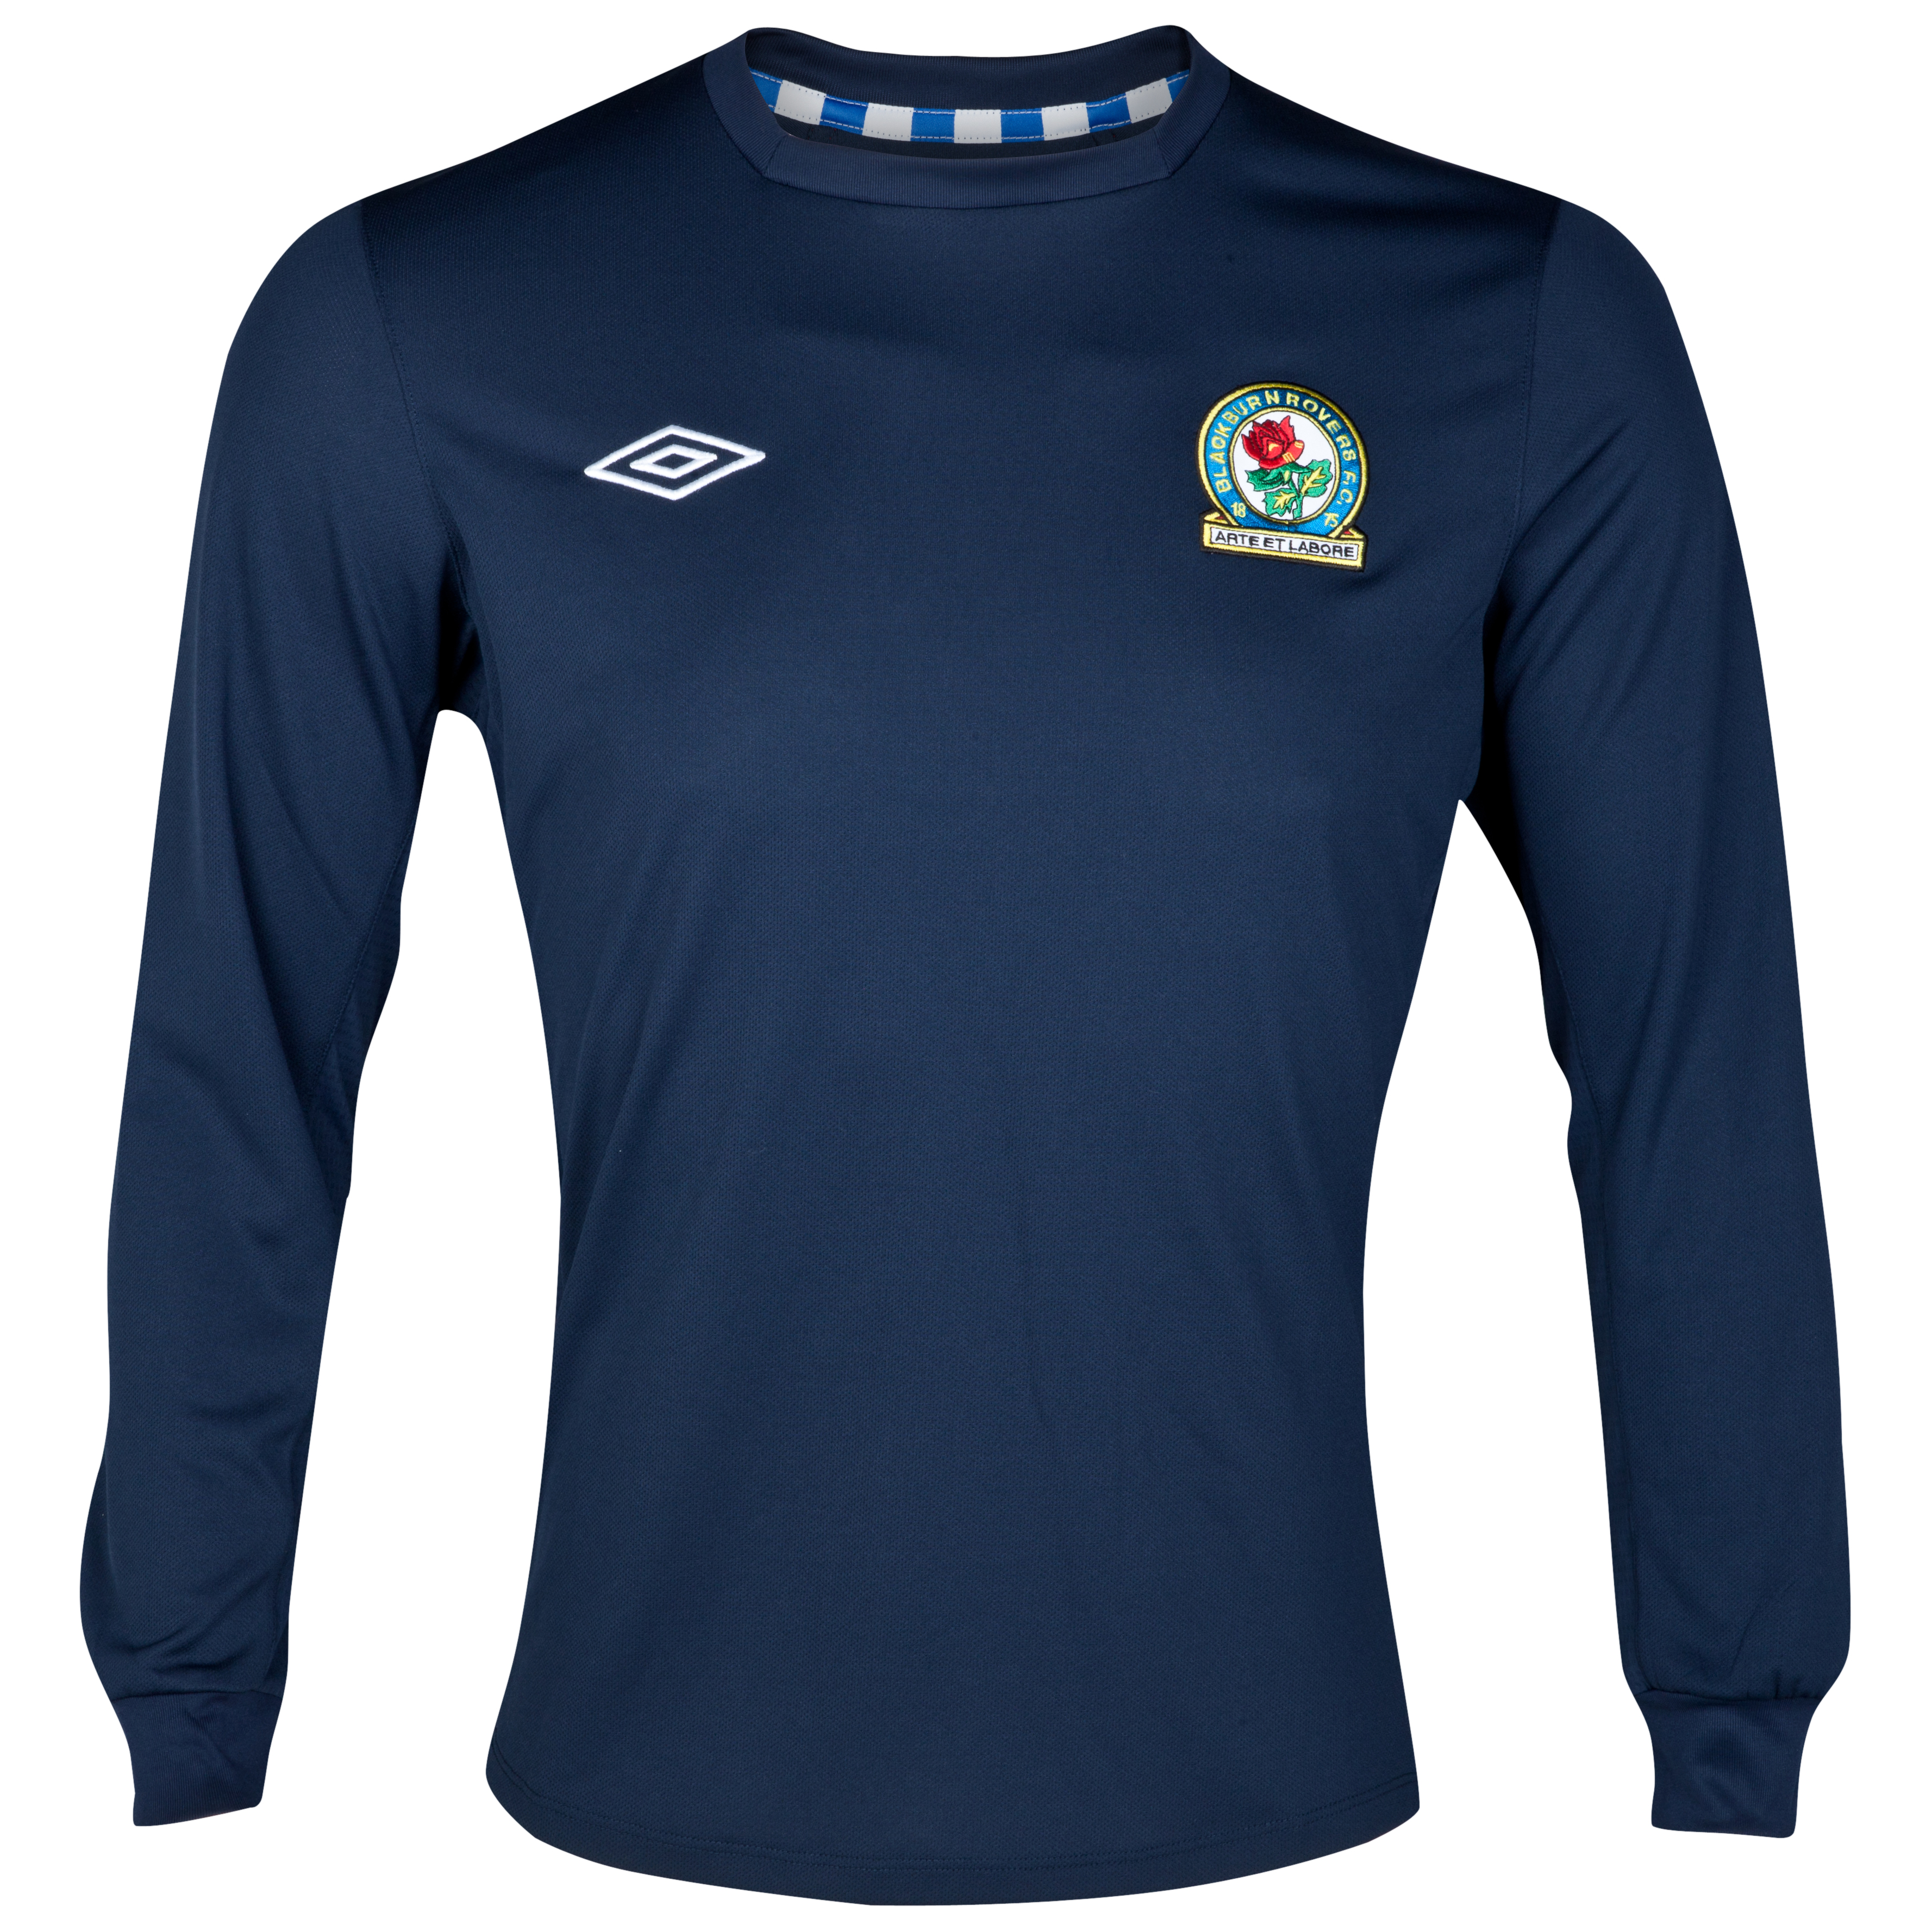 Blackburn Rovers Away Shirt 2012/13 Long Sleeve